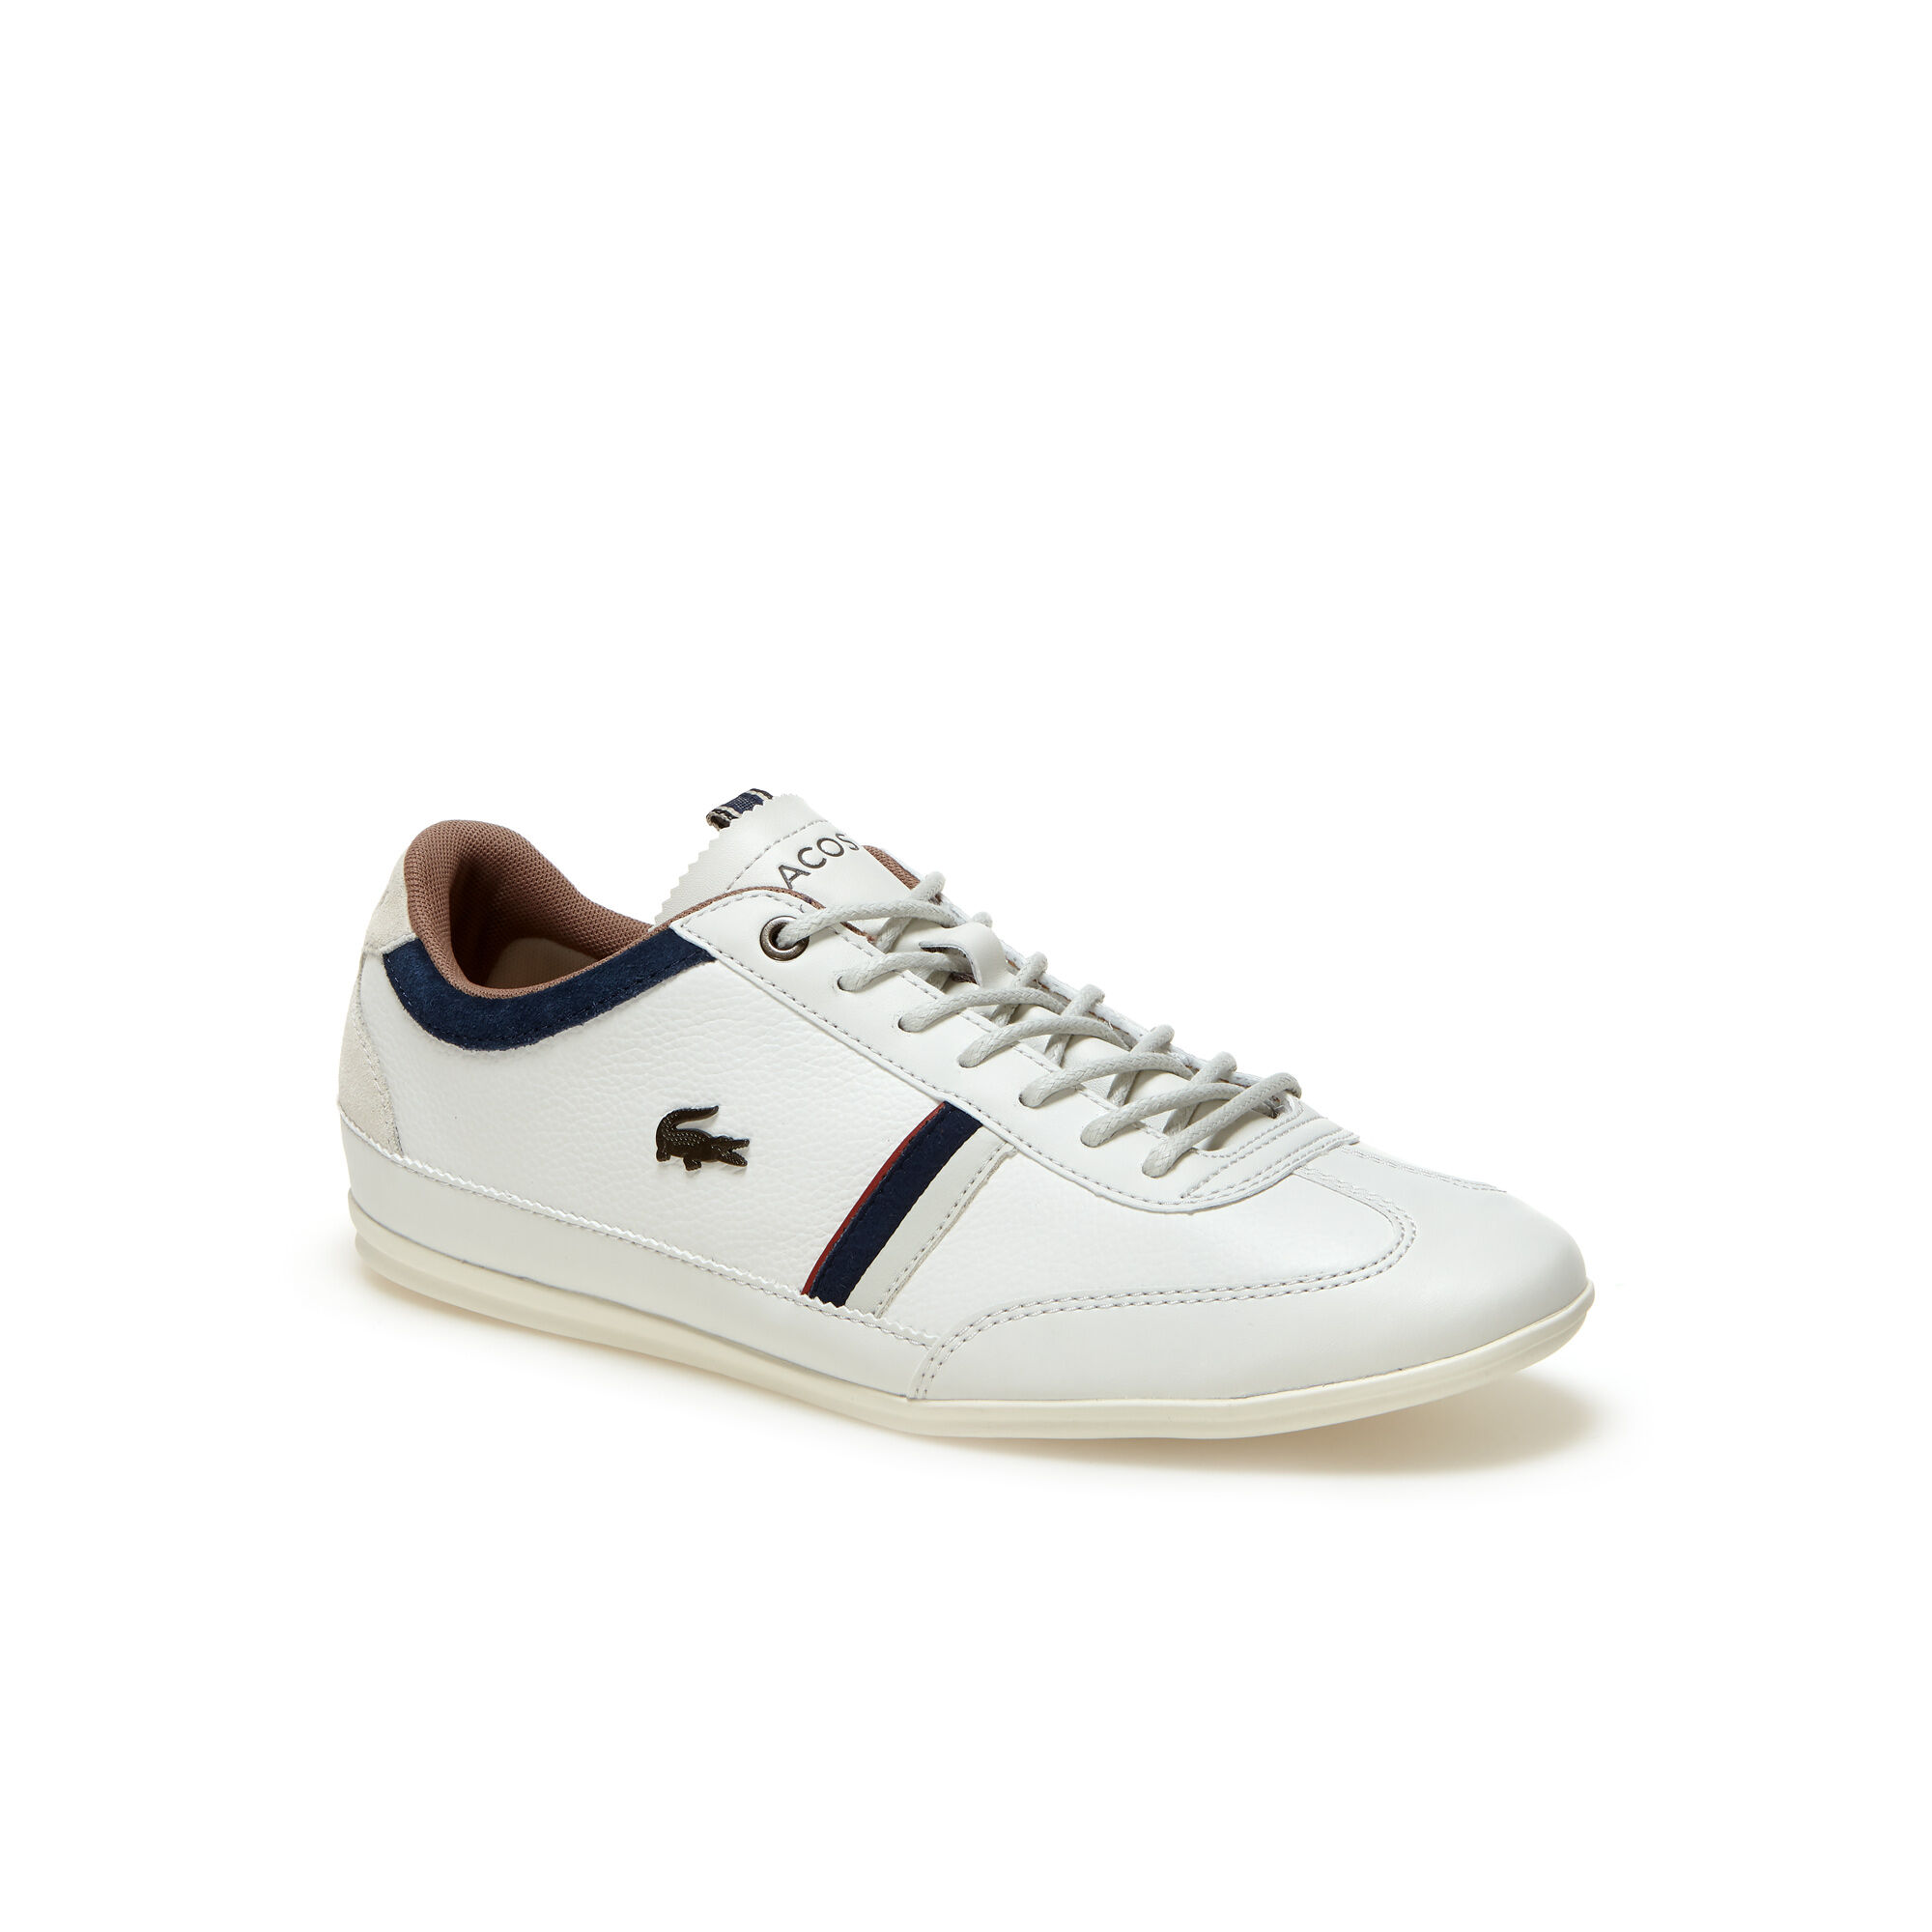 lacoste shoes online dubai visa for pakistanis